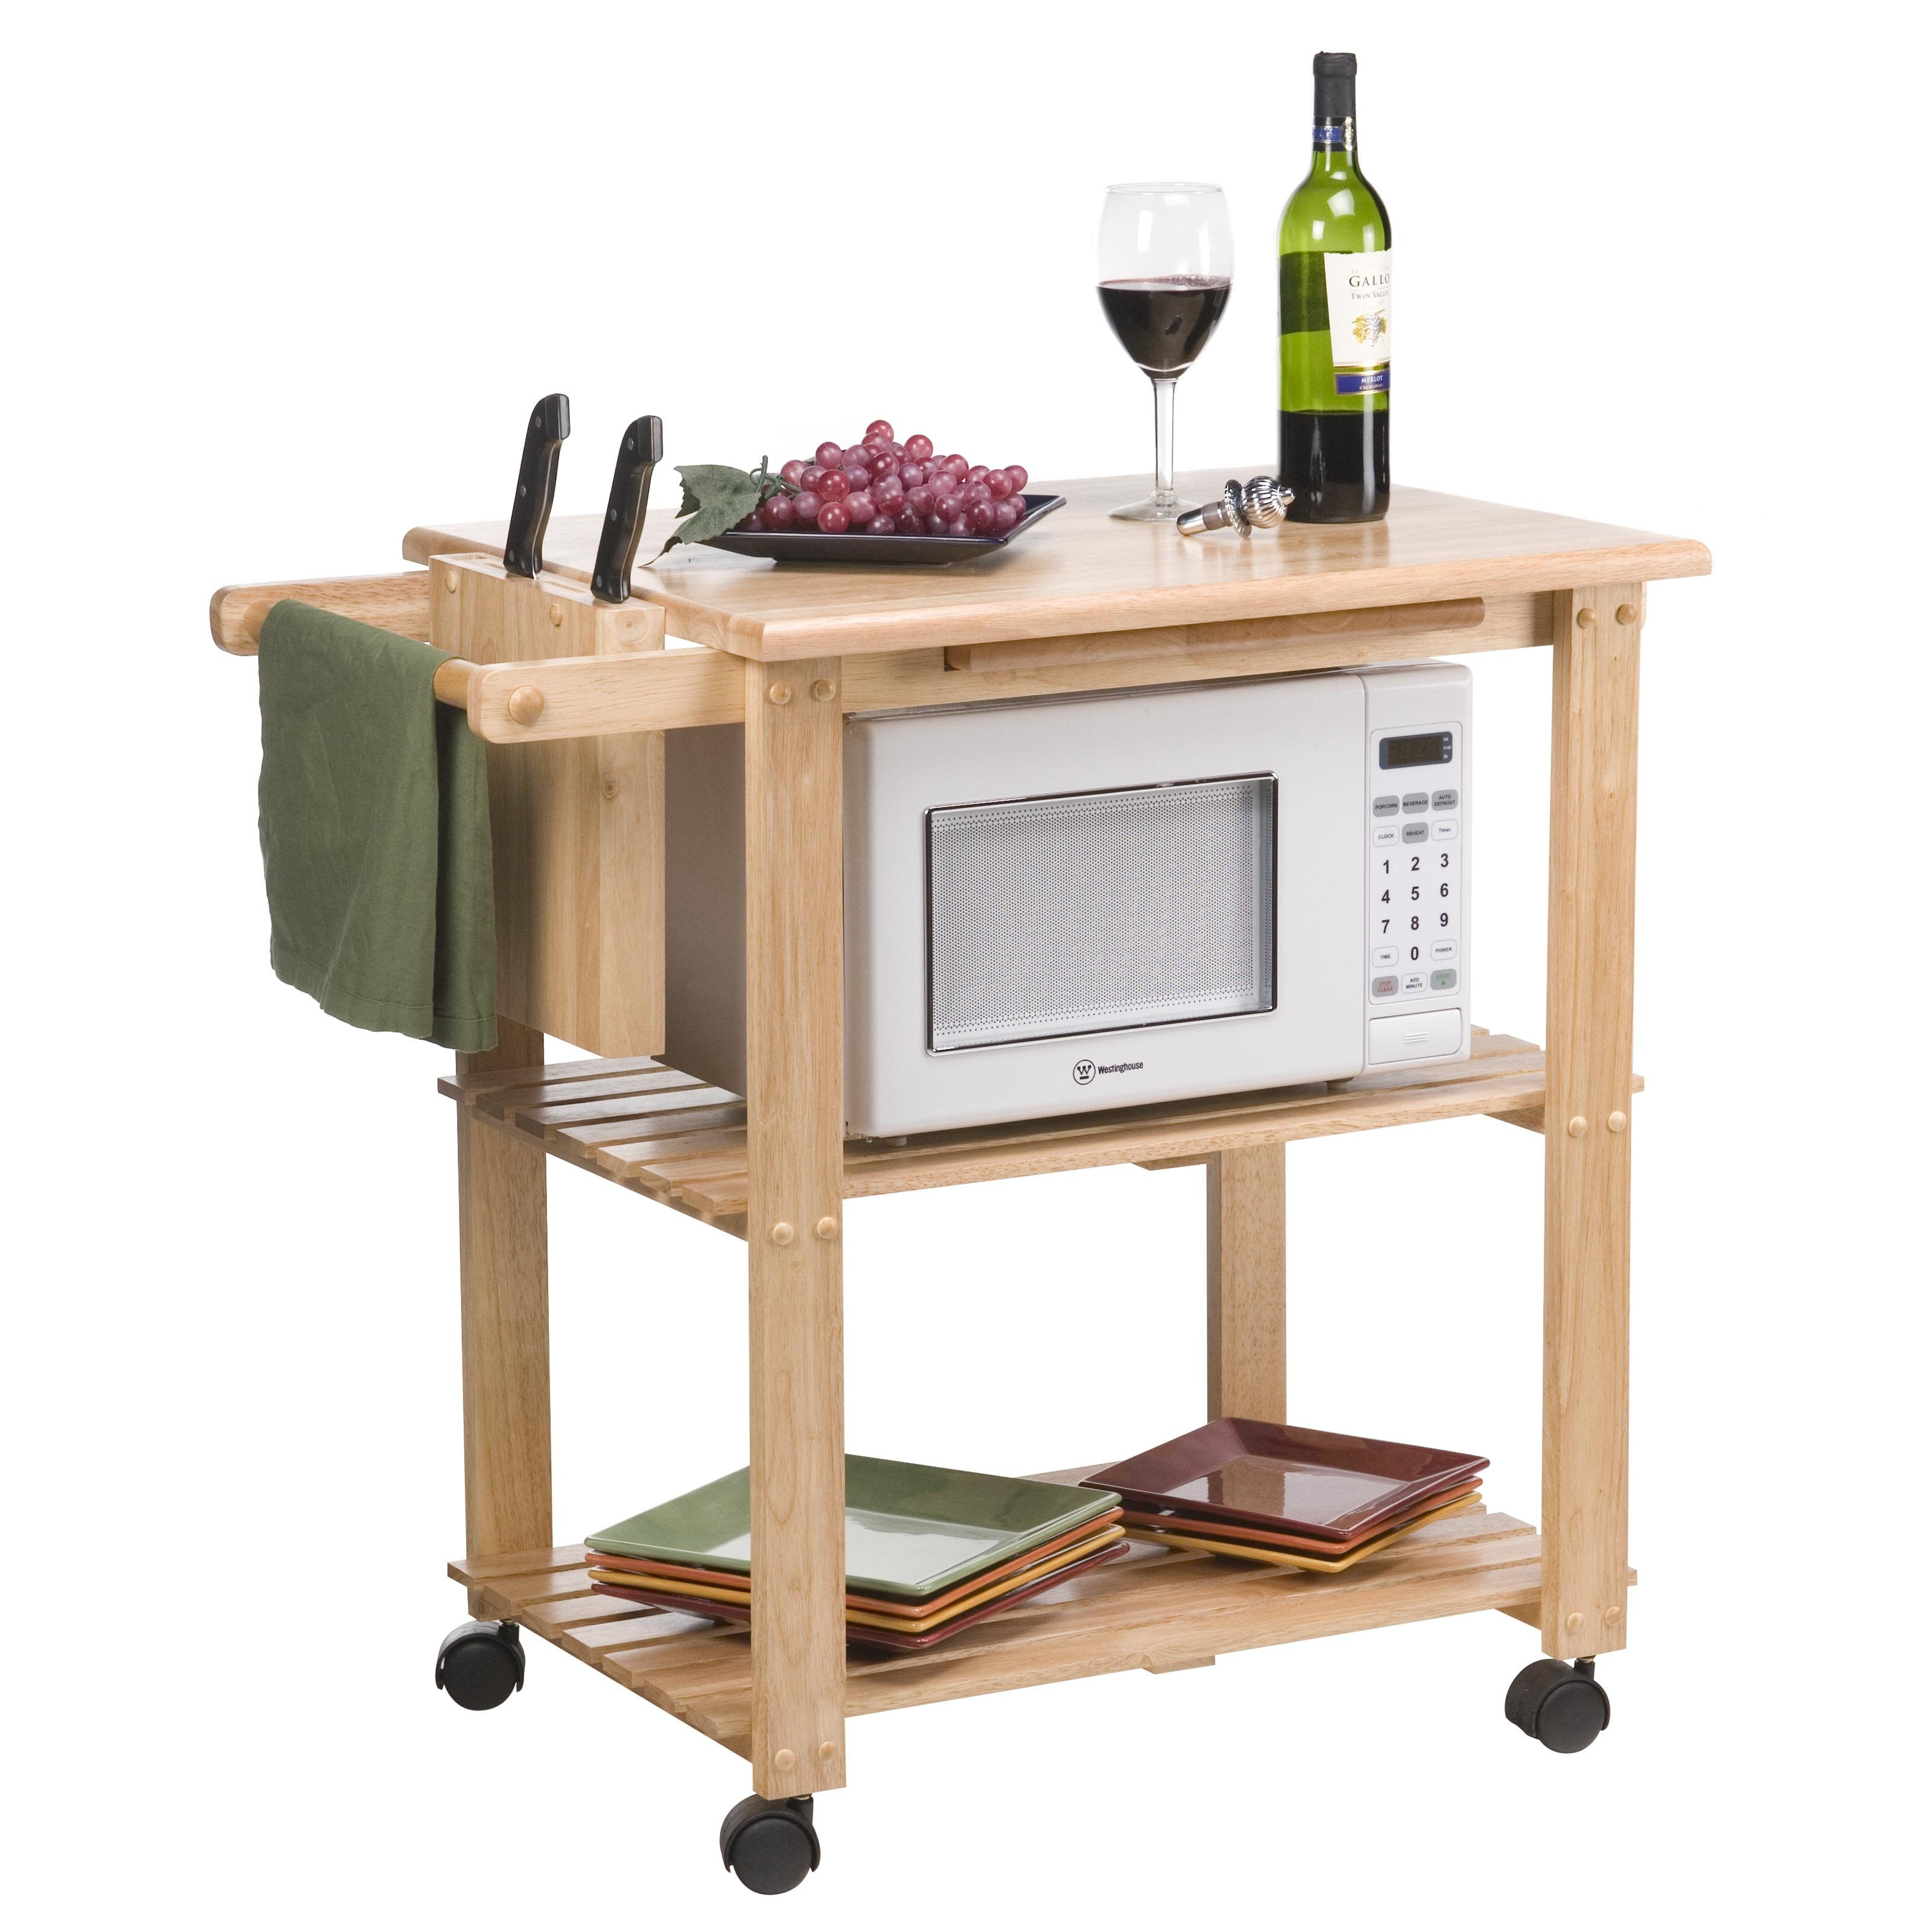 Microwave Cart Ikea: Make It as A House for Your Microwave ...